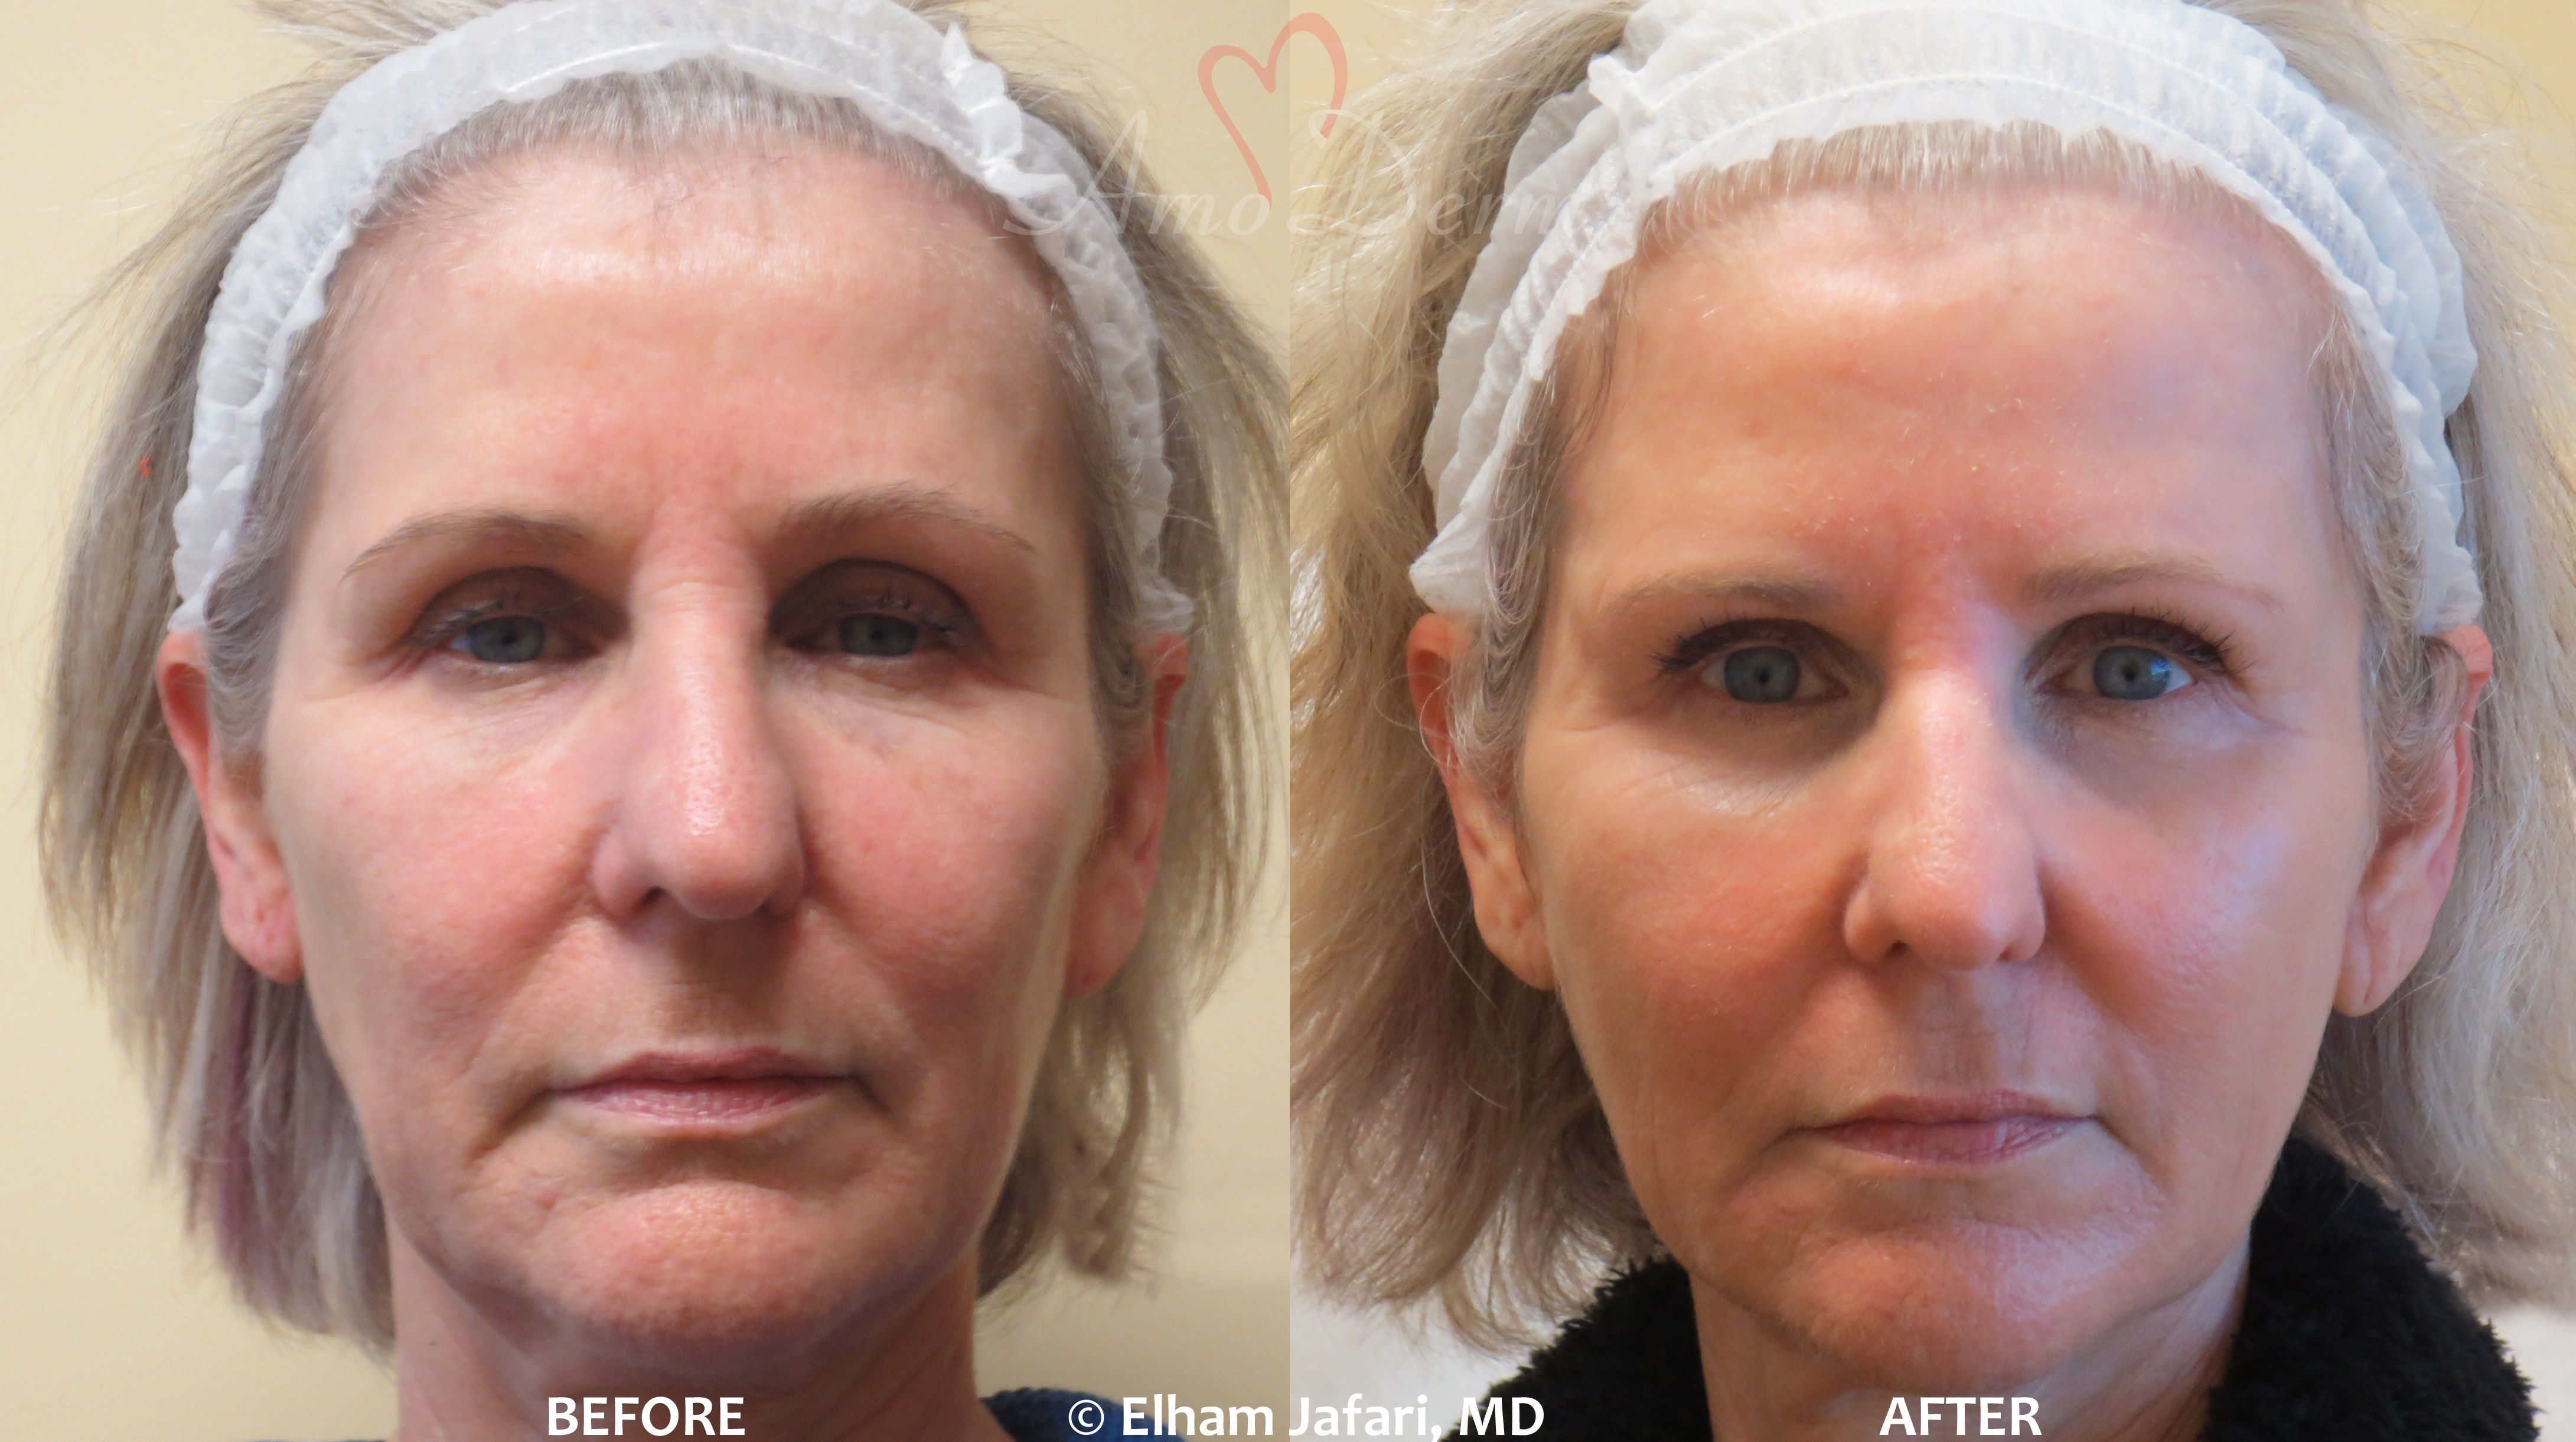 Surgical Facelift or Liquid Facelift - Before and After pictures